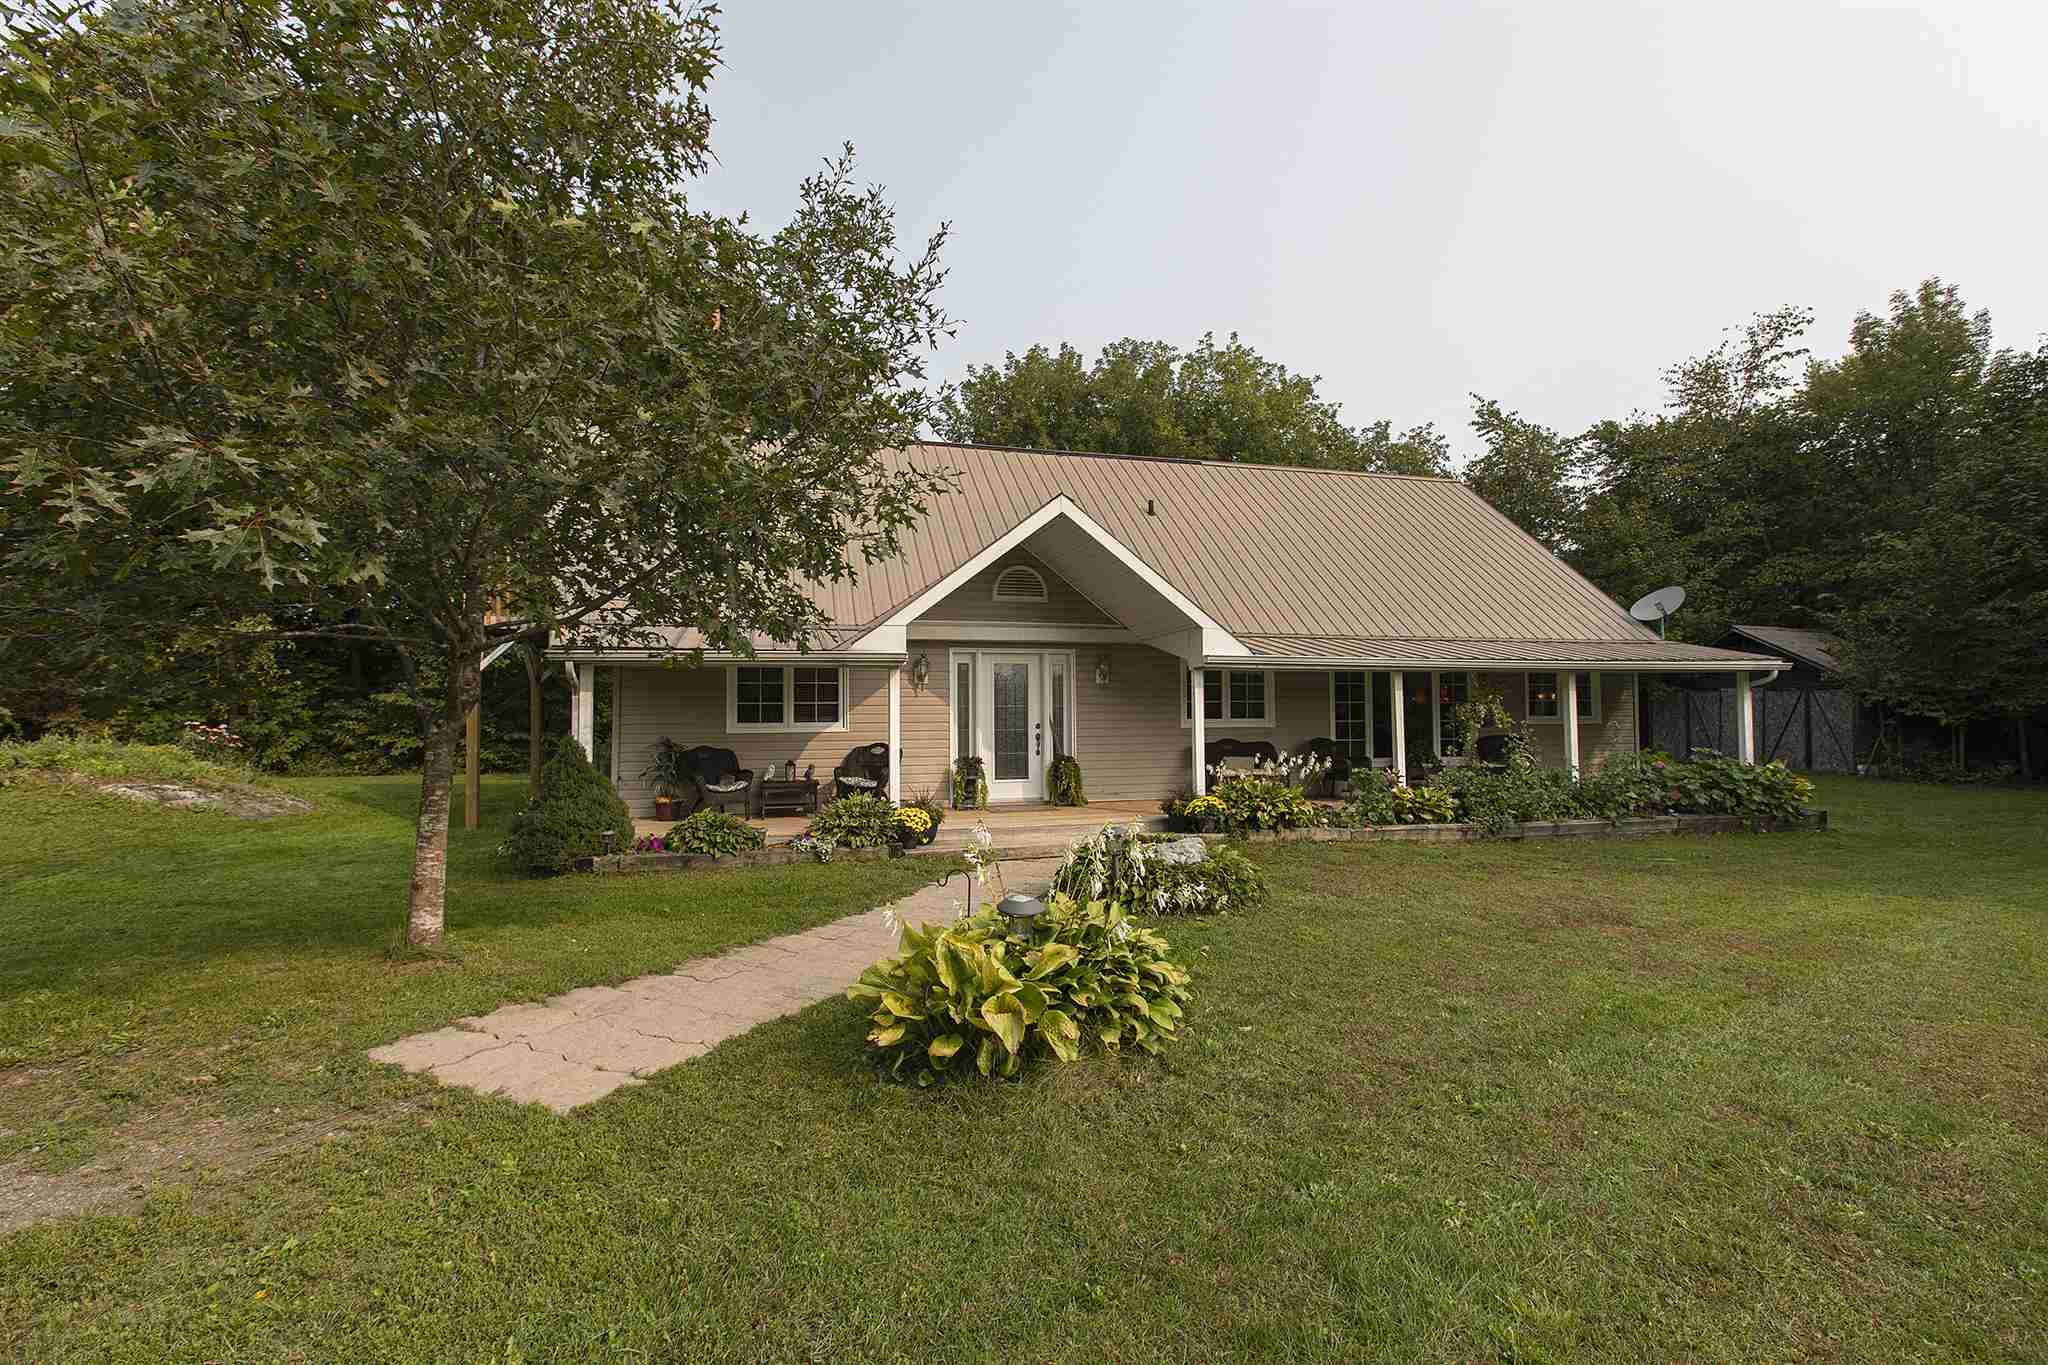 294 Back Street, Leeds & 1000 Islands Township Ontario, Canada